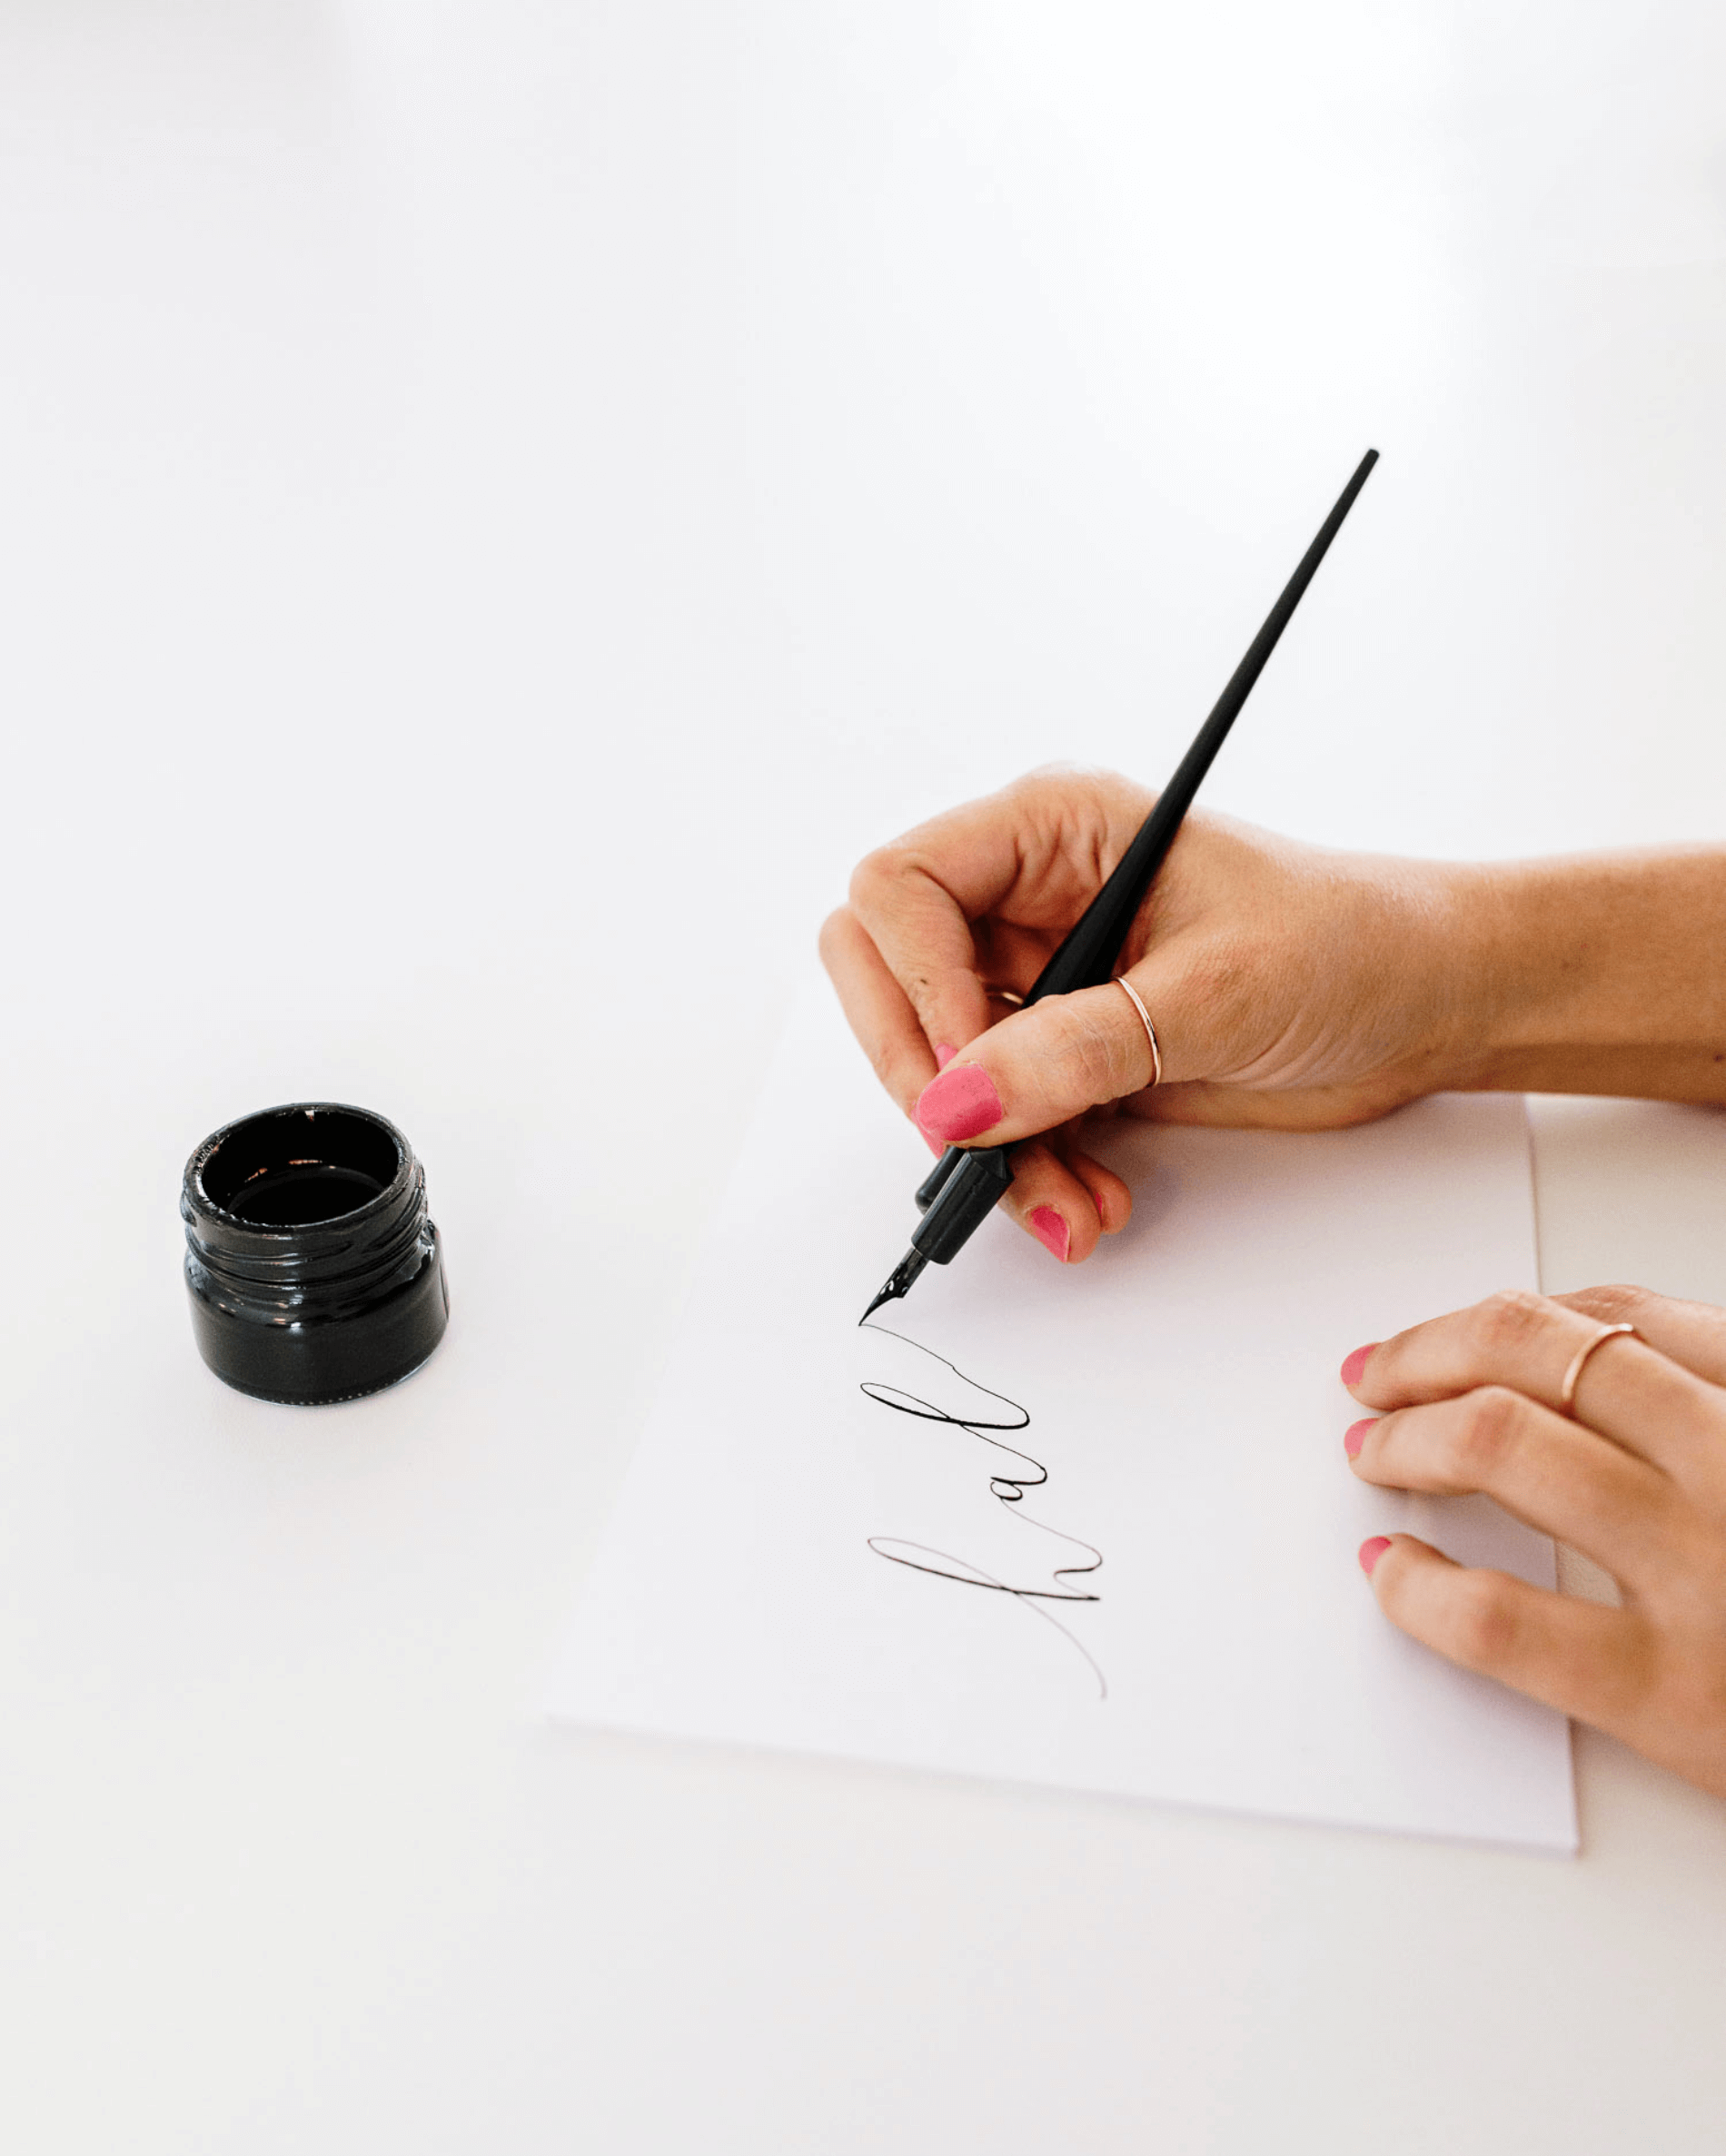 Ana Luiza Pointed Pen Calligraphy